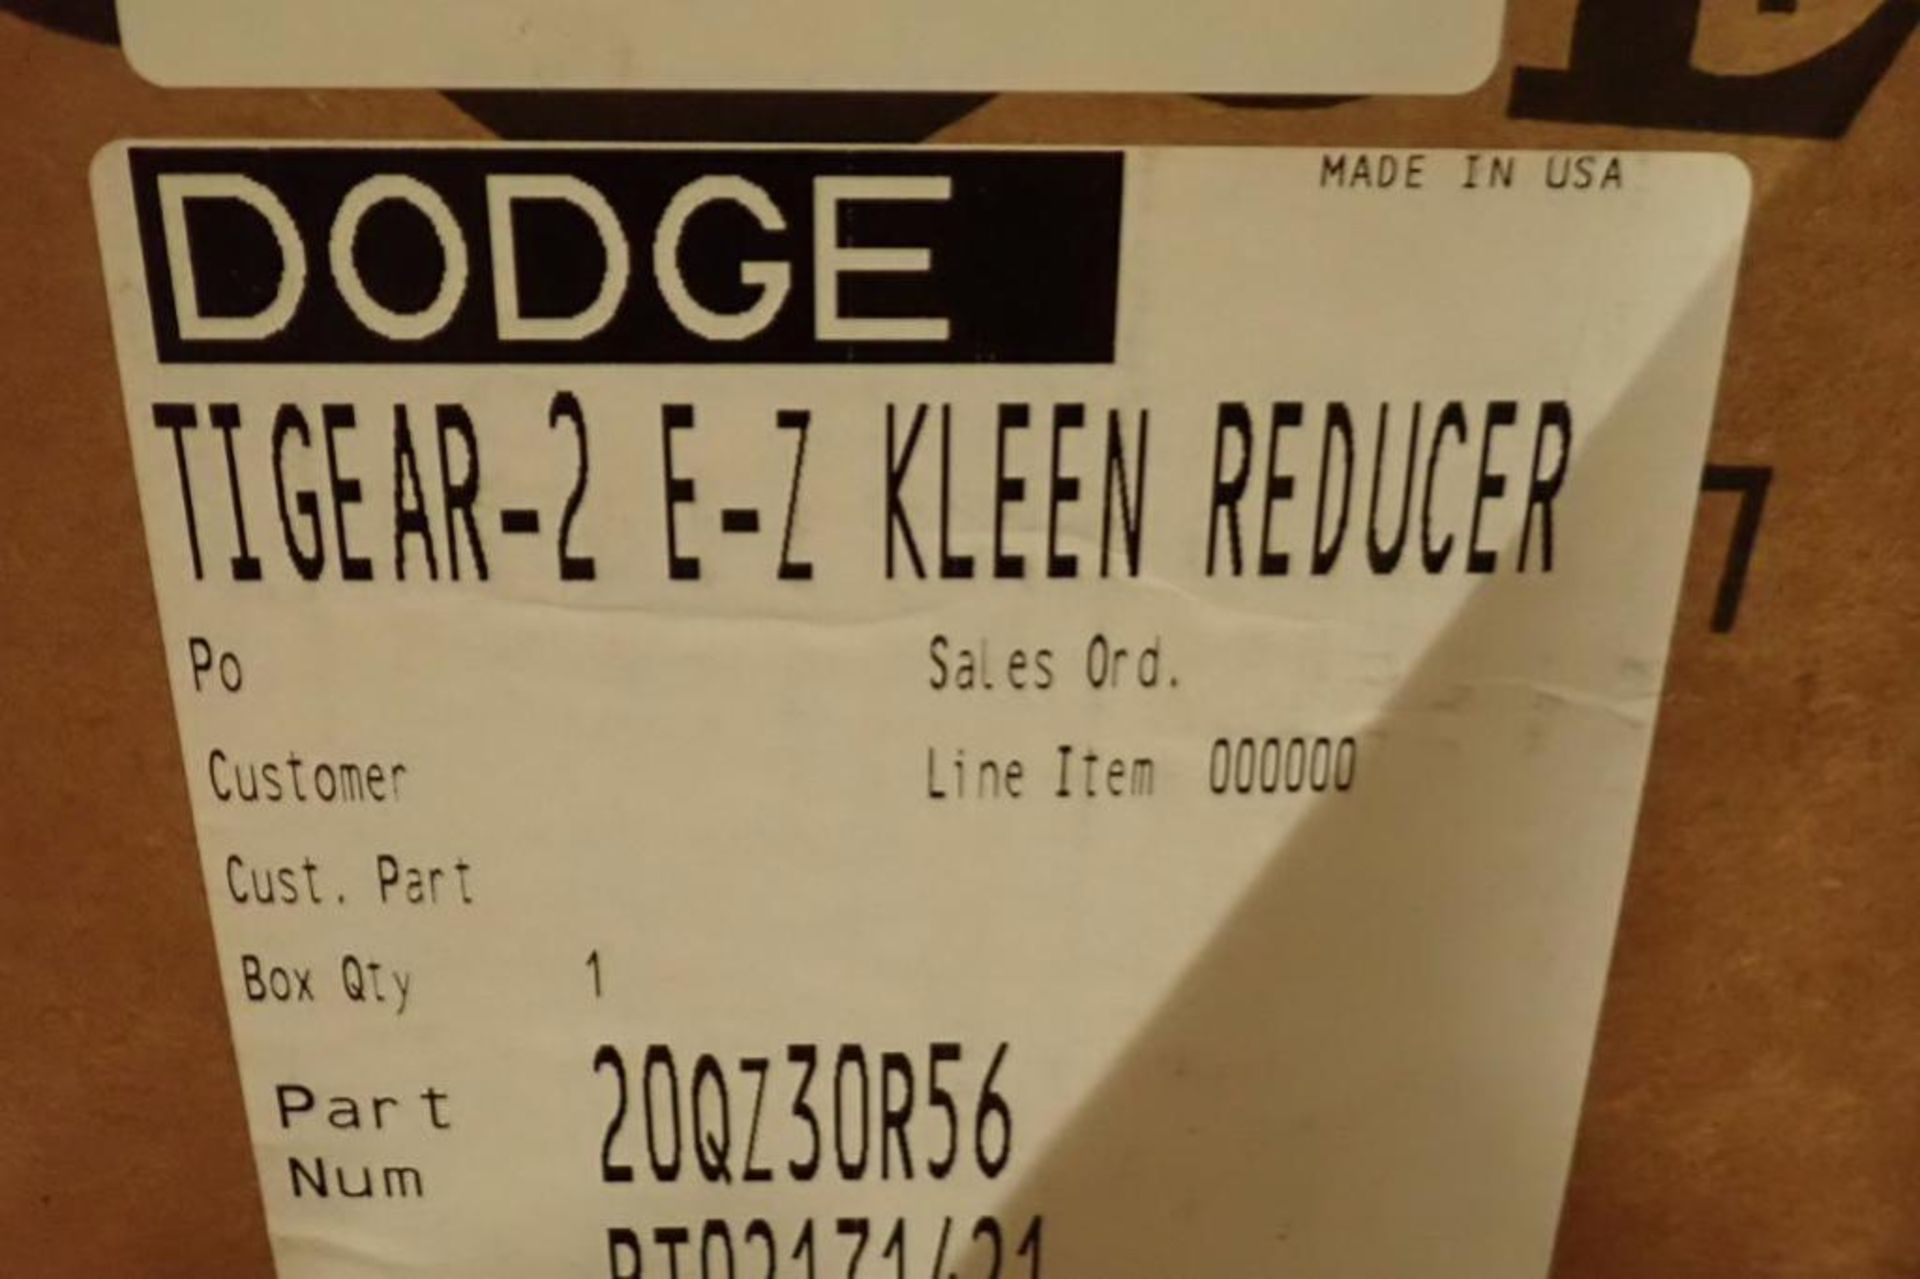 Unused Dodge gear reducers ** Rigging Fee: $25 ** - Image 13 of 14